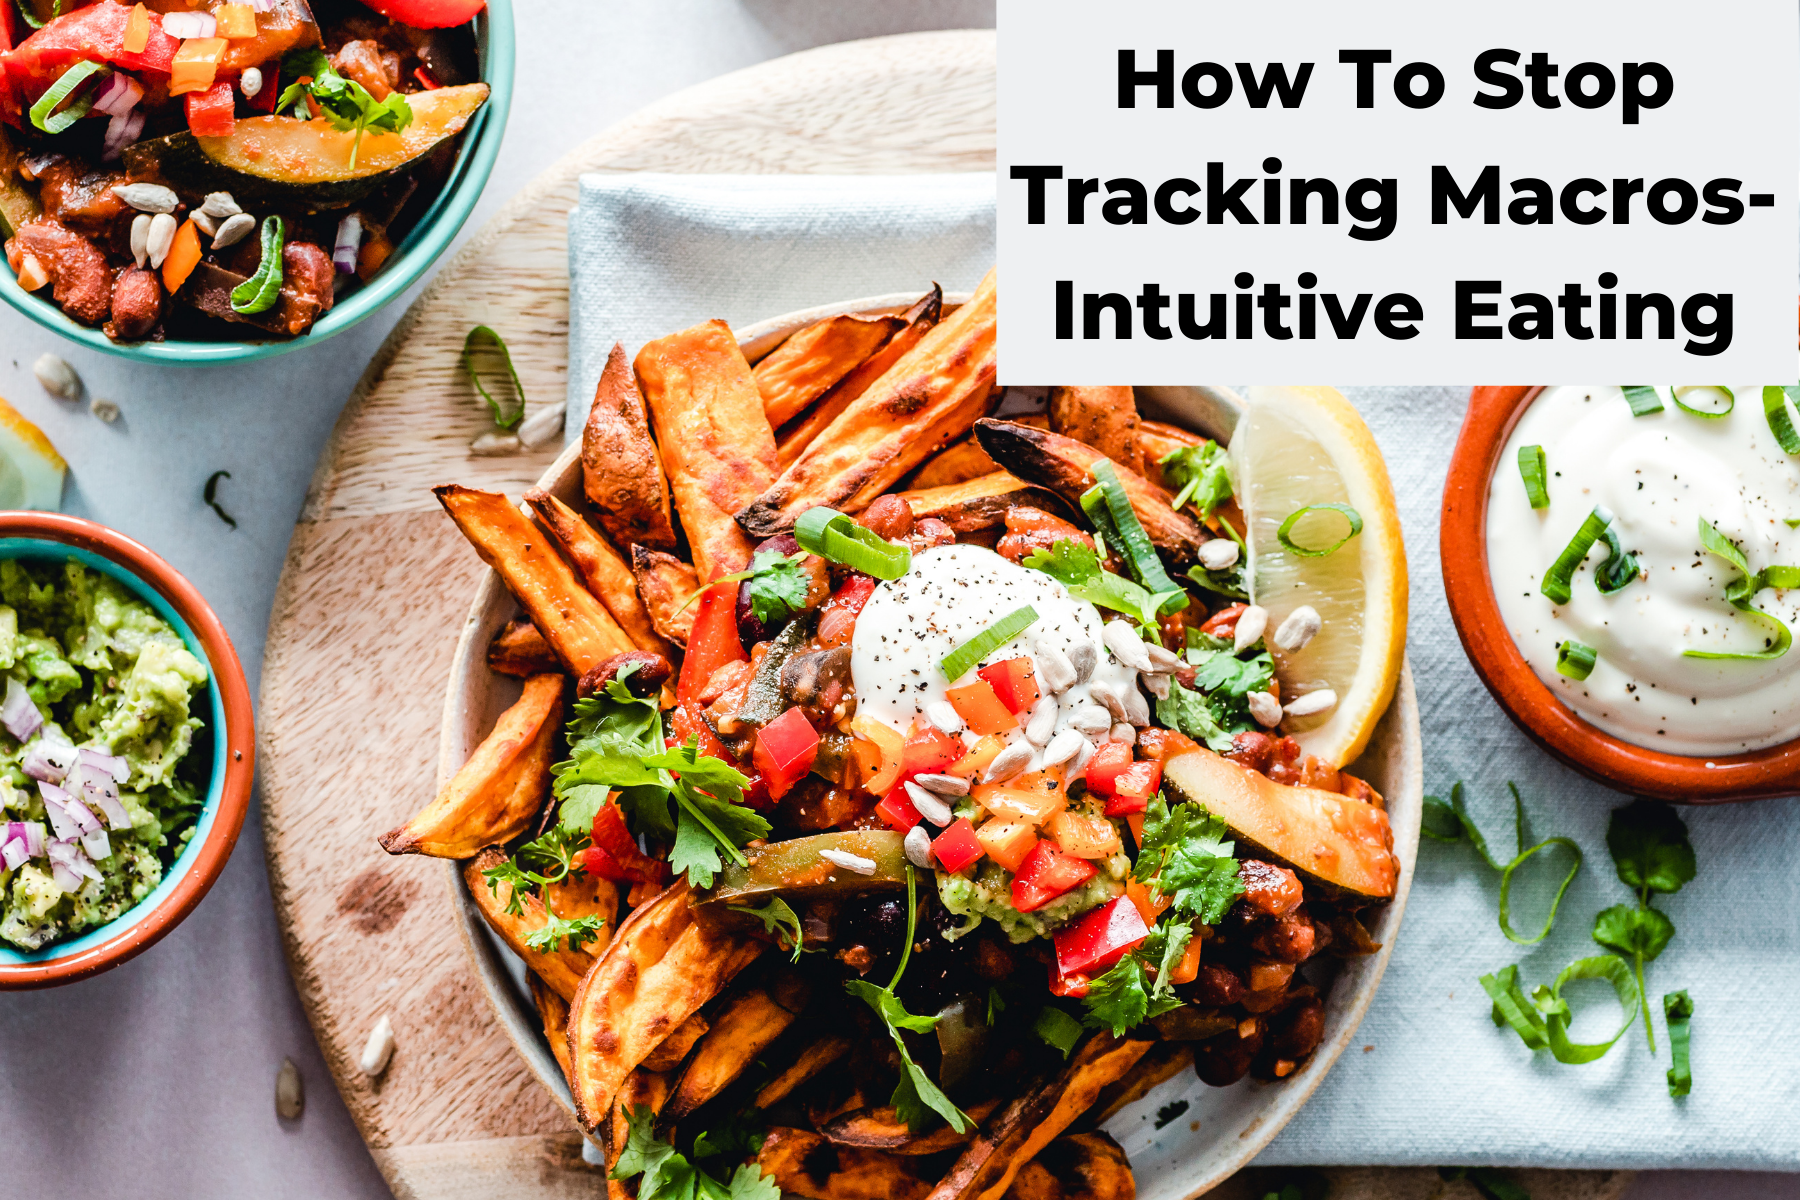 How to Stop Tracking Macros